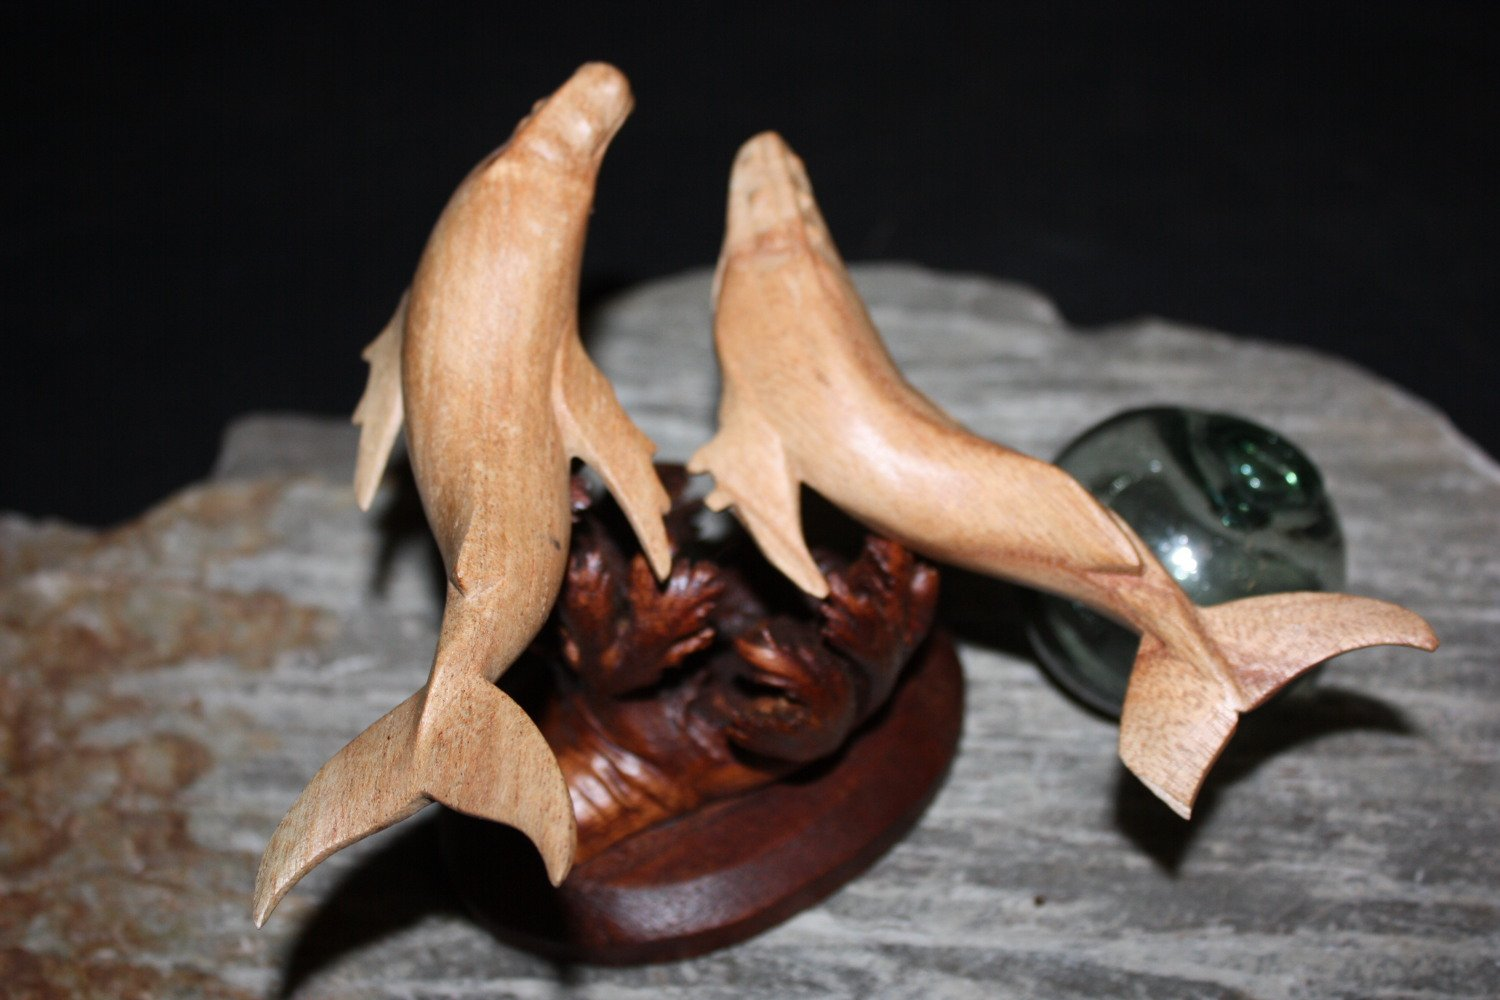 TikiMaster Swimming Humpback Whales w/Driftwood Base 6'' X 7'' - Carved | #non01 by TikiMaster (Image #3)